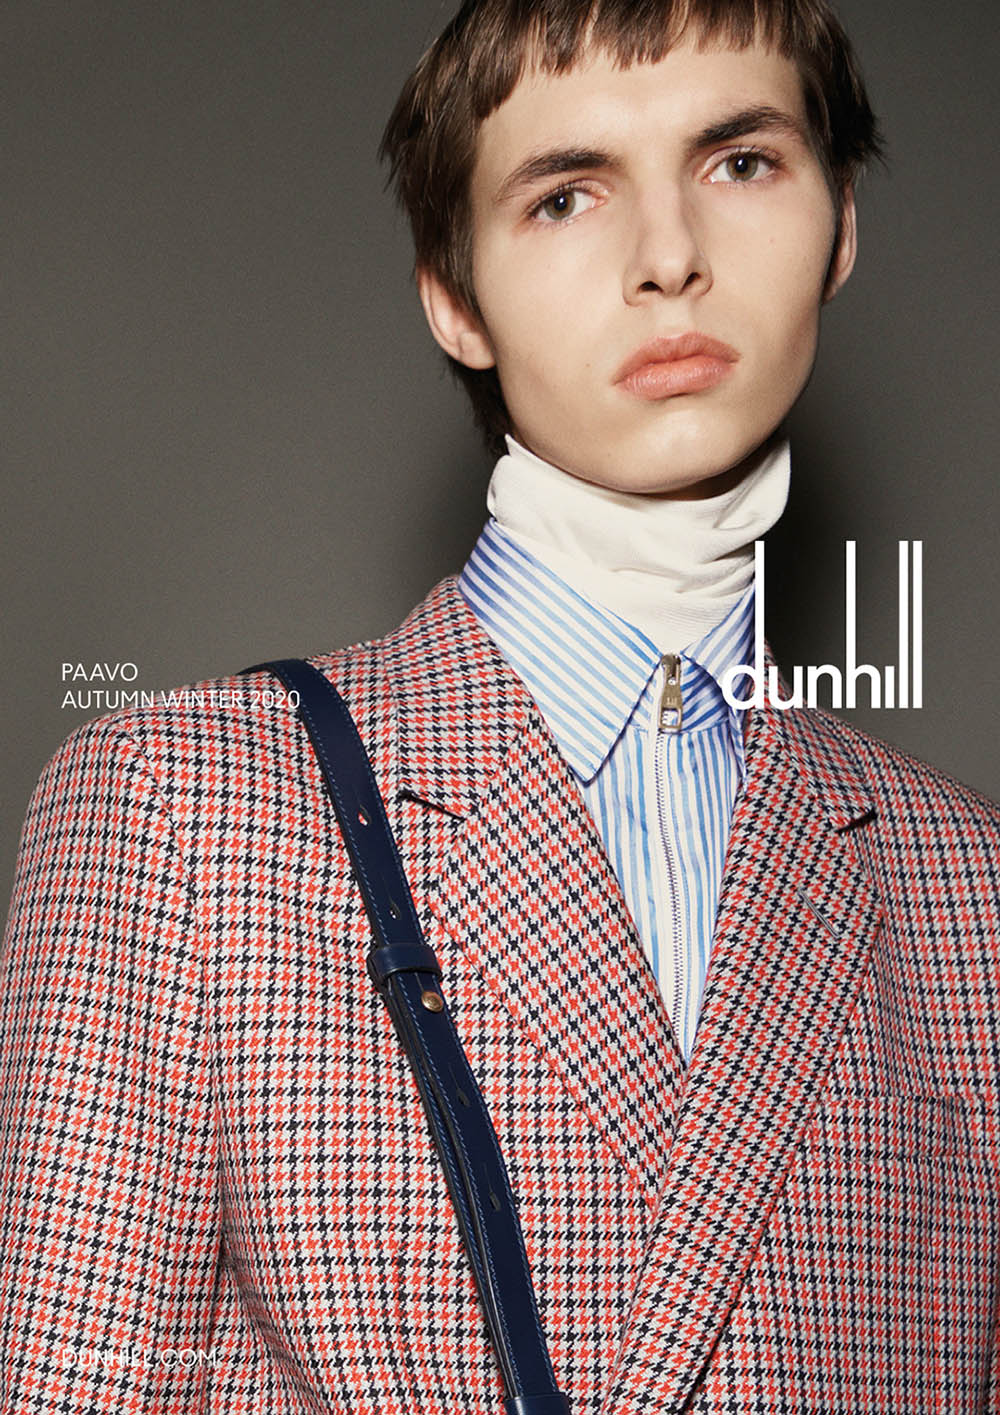 Dunhill Fall Winter 2020 Campaign